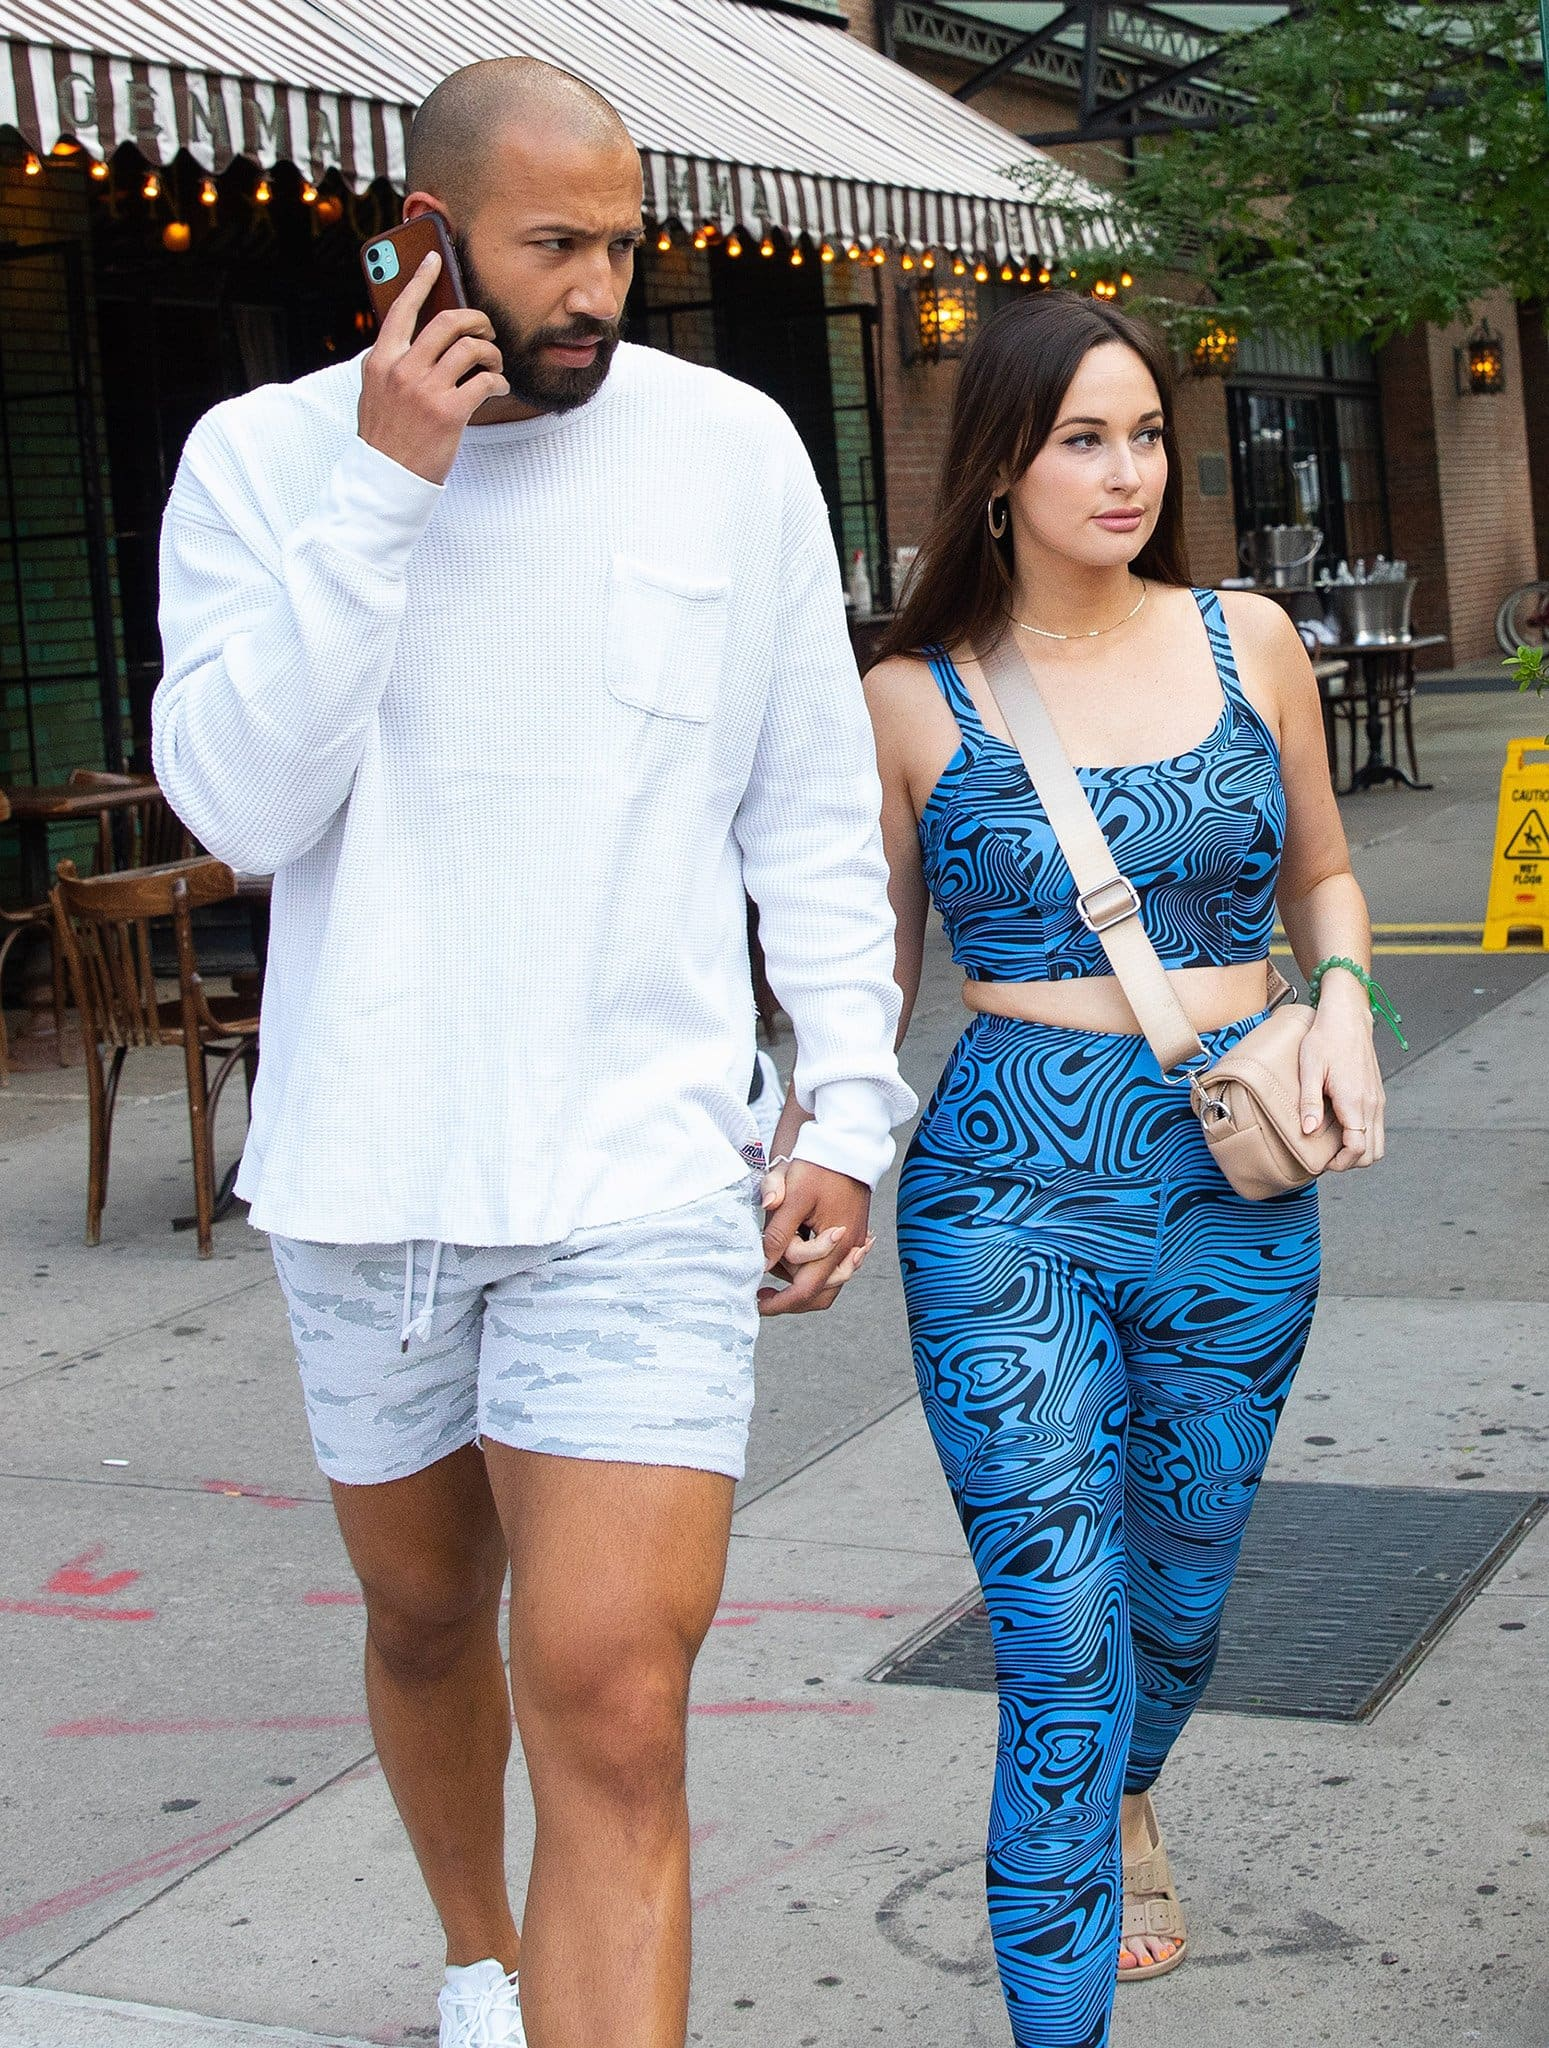 Kacey Musgraves shows off her curves in a blue printed athleisure